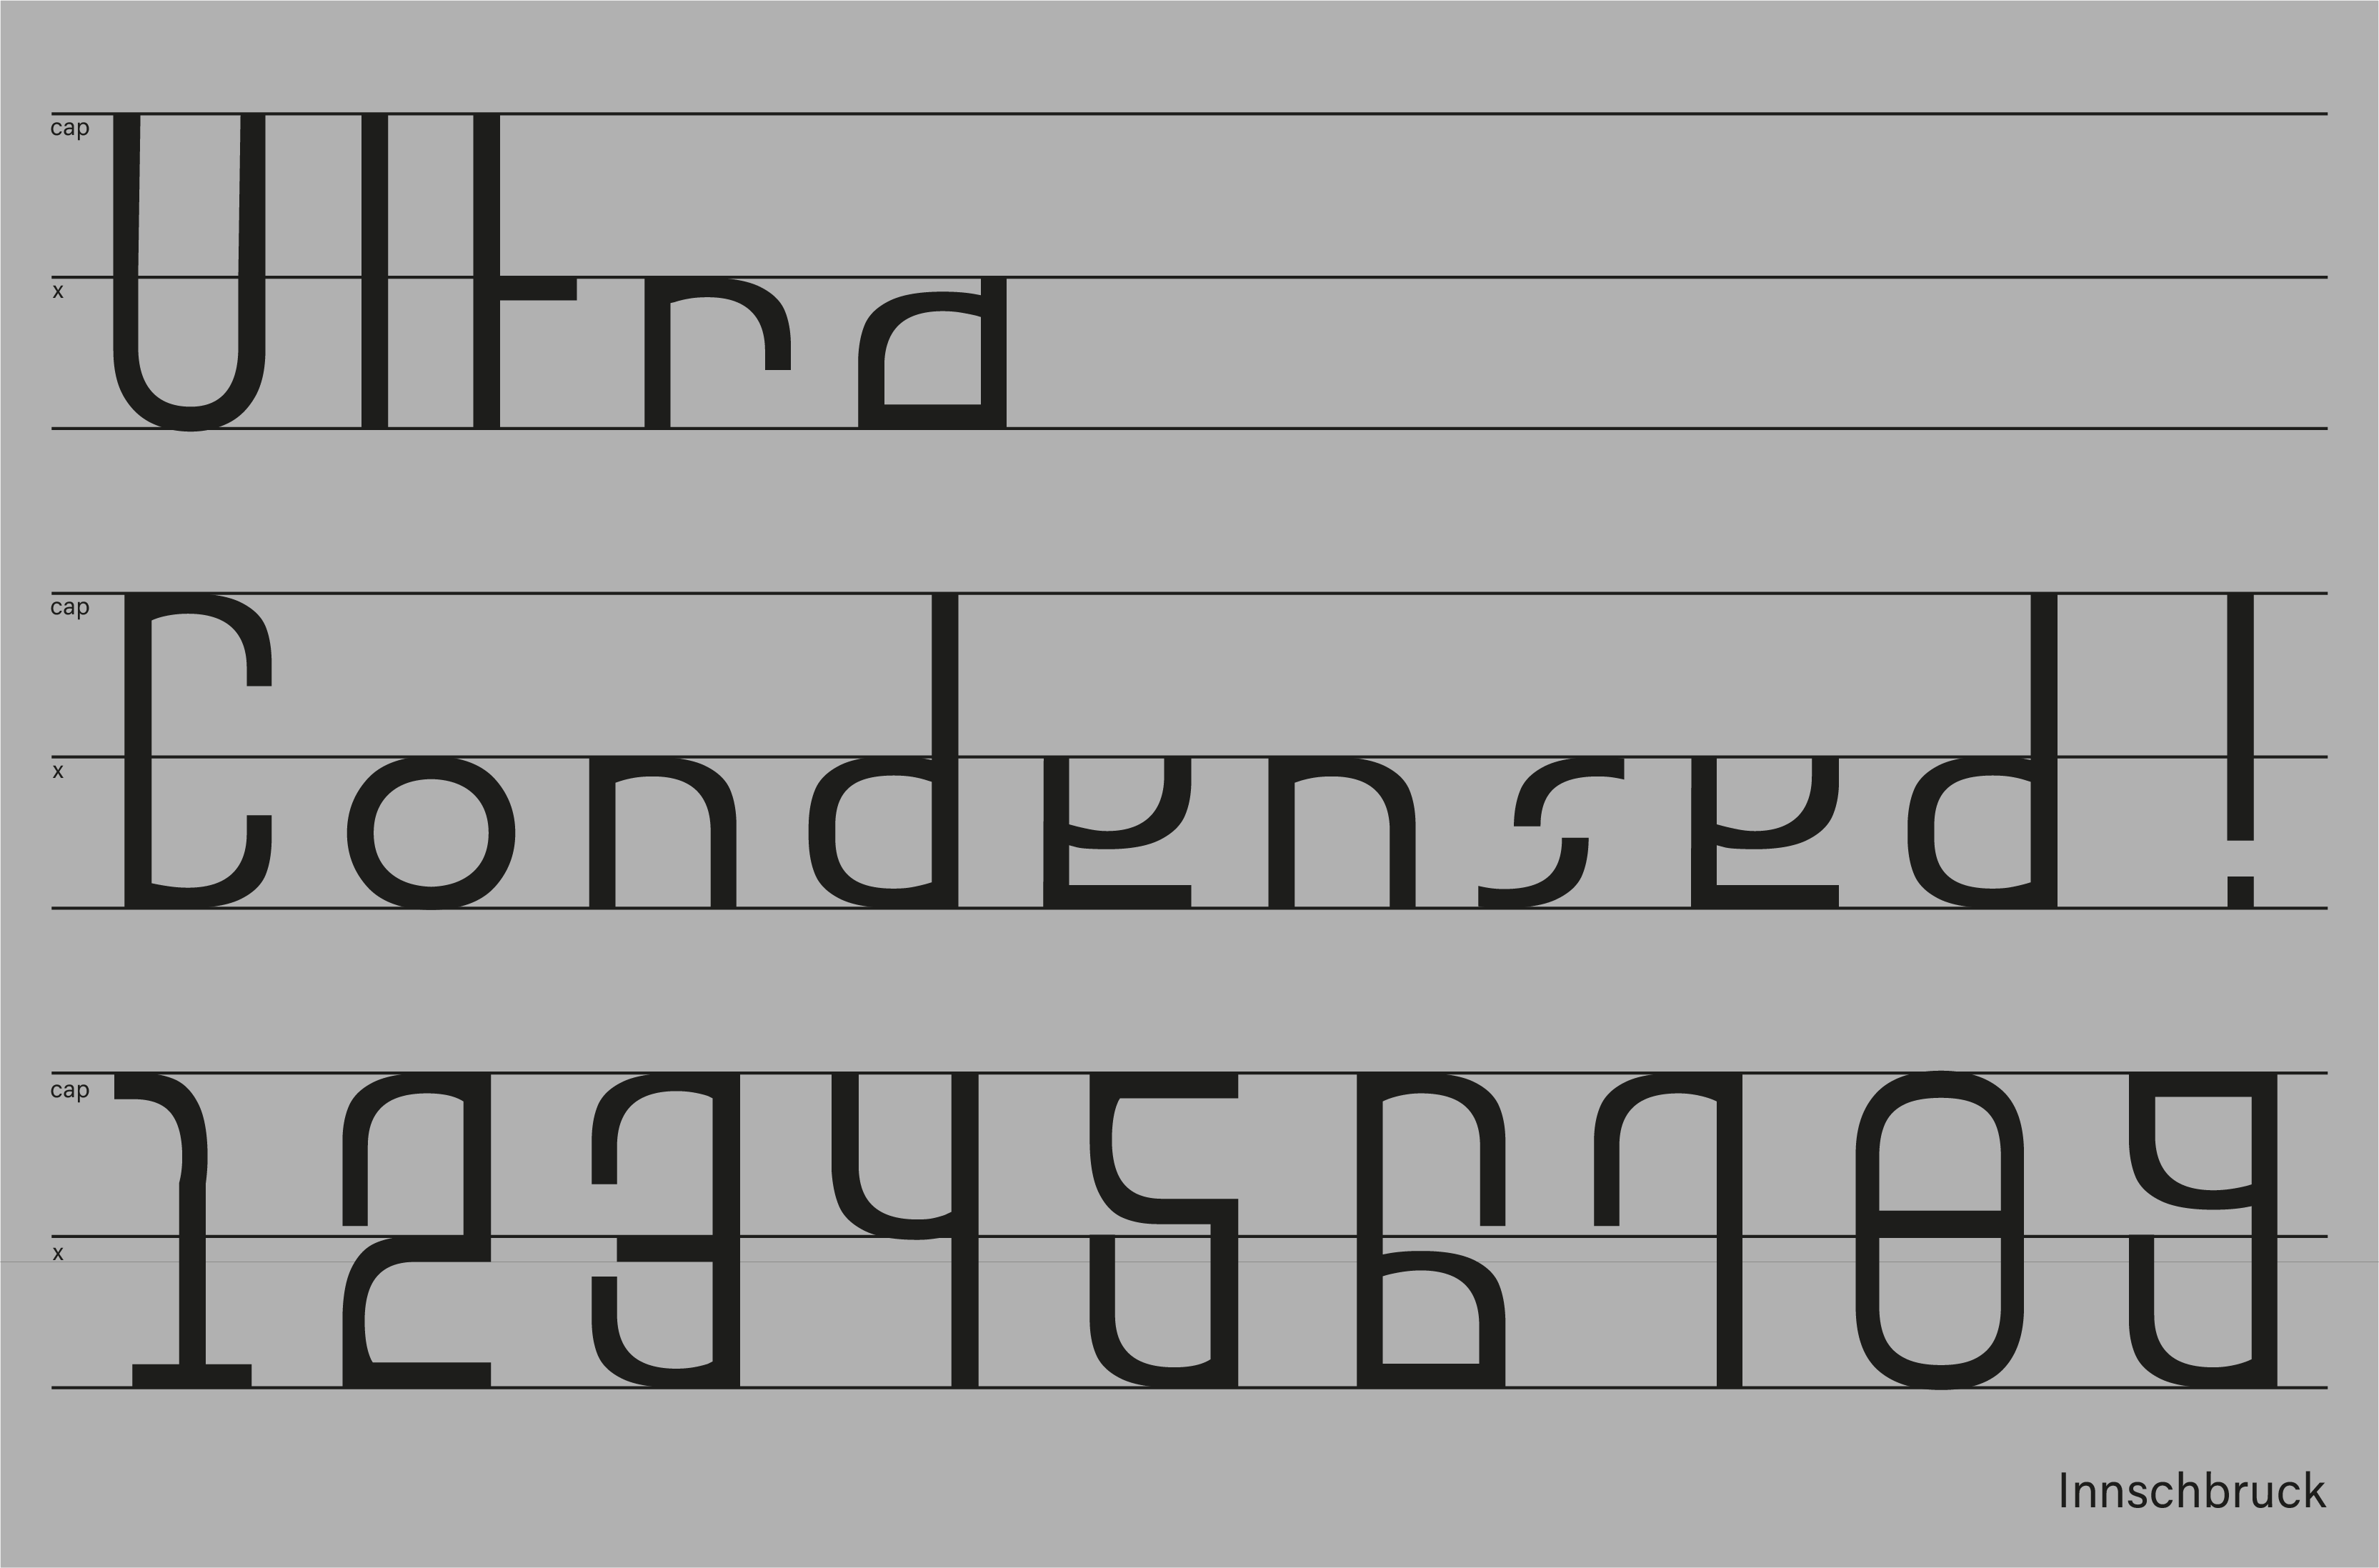 Innschbruck Variable Font Condensed